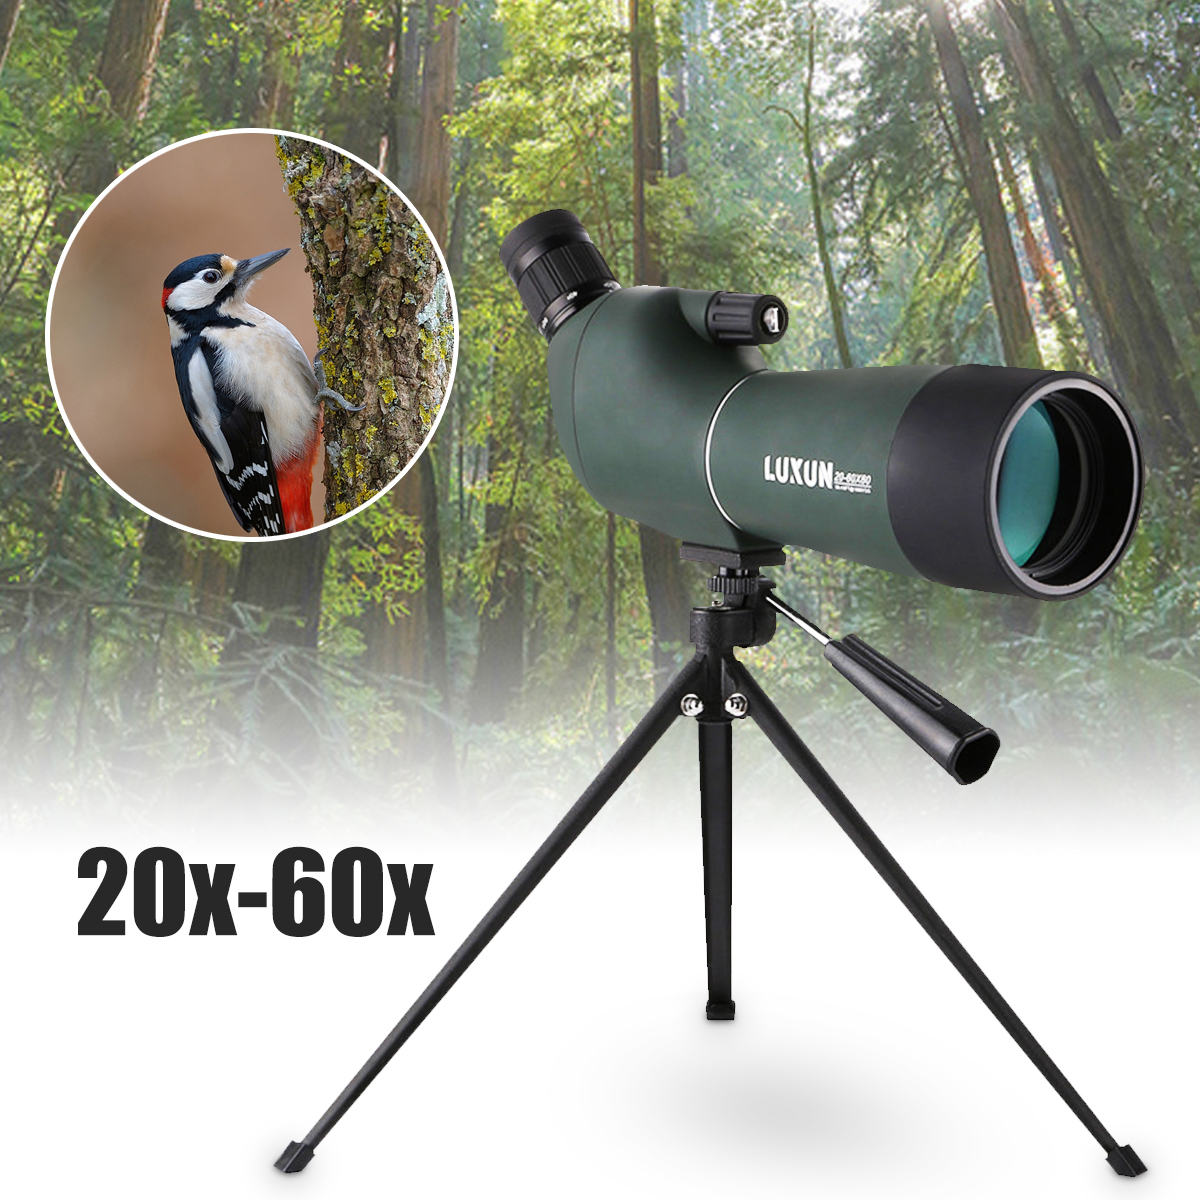 20-60x60mm Night Vision Spotting Scope Telescope Zoom 60mm Waterproof Birdwatch Hunting HD Monocular Tripod Outdoor Camping 15 45x60 spotting scope waterproof telescope 60mm 15 45x zoom birdwatch long range hunting monocular with tripod mount